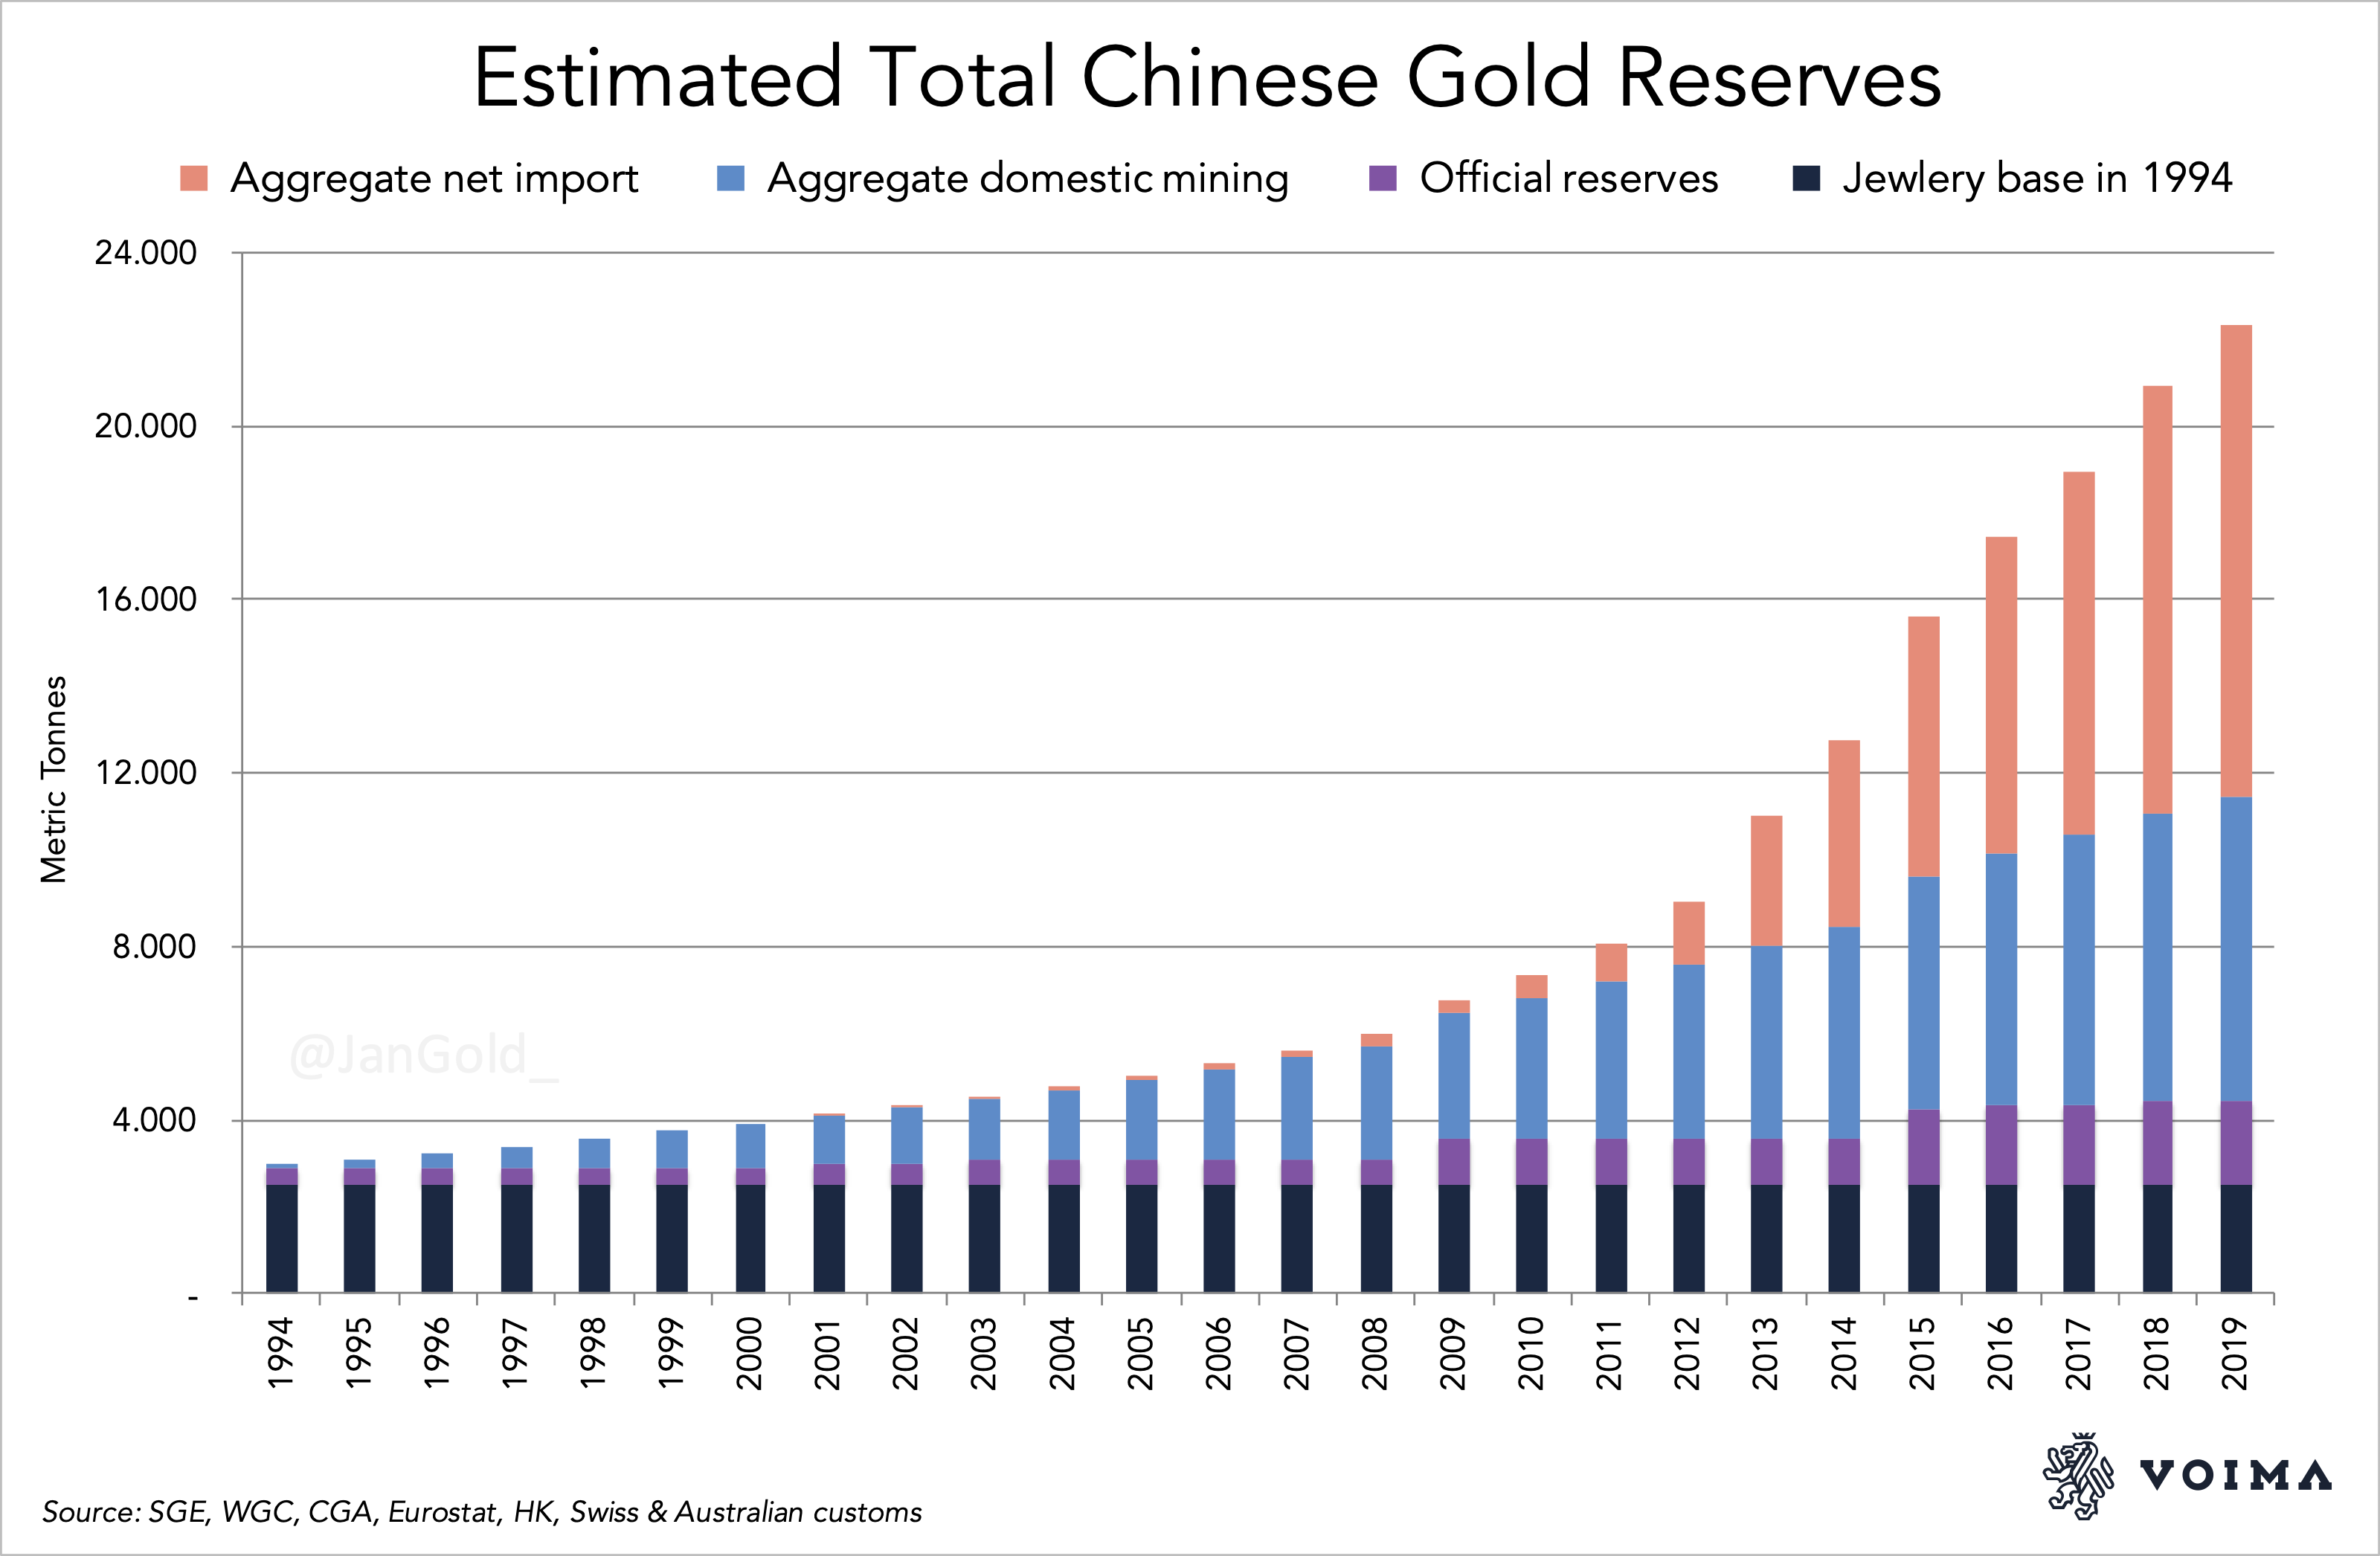 Estimated Total Chinese Gold Reserves